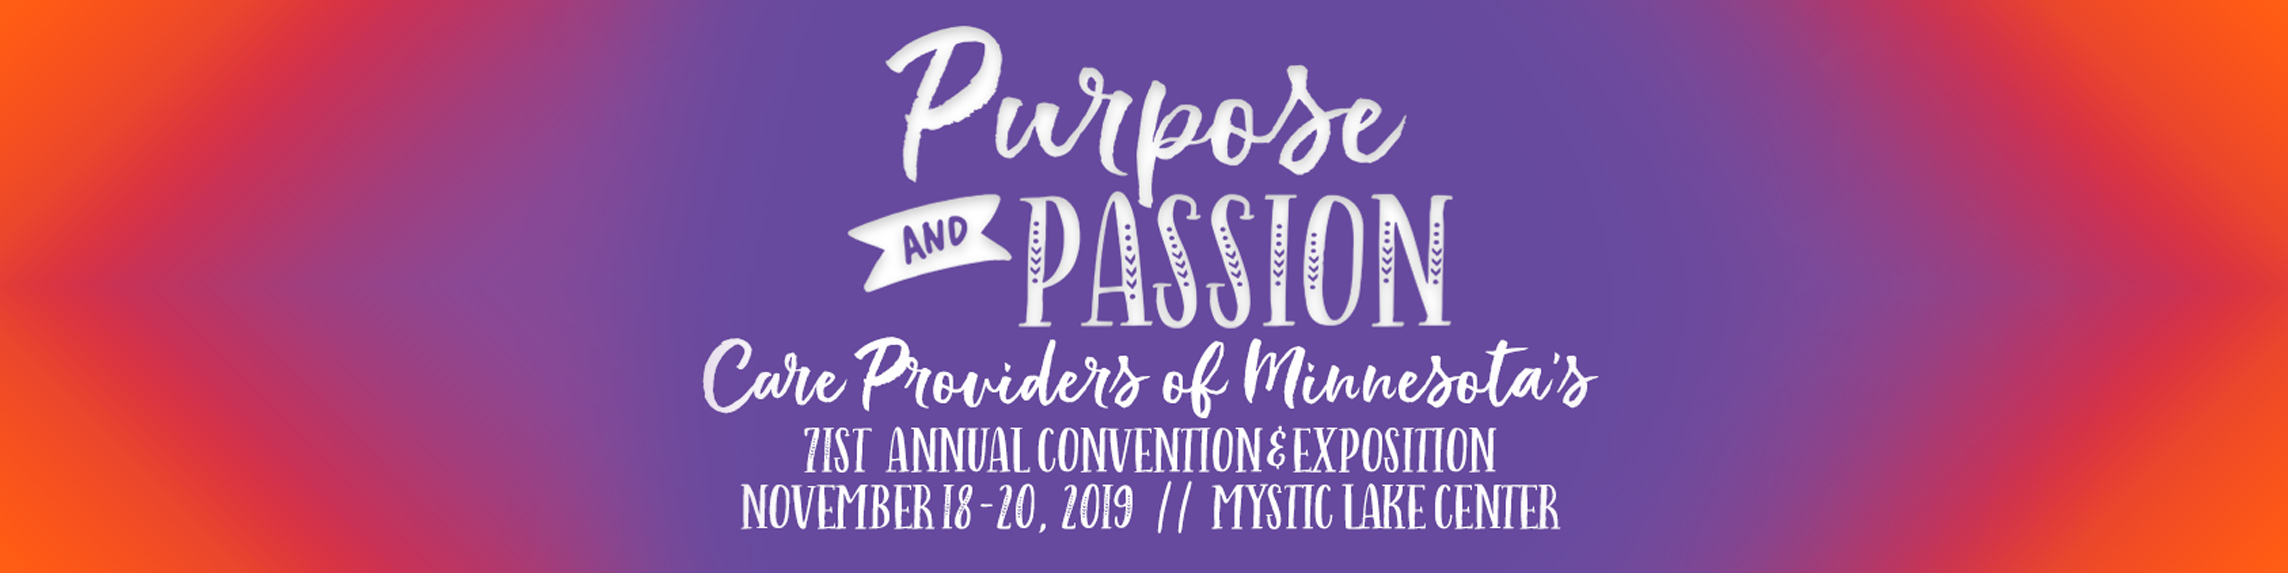 Care Providers Of Minnesota 71st Annual Convention & Exposition